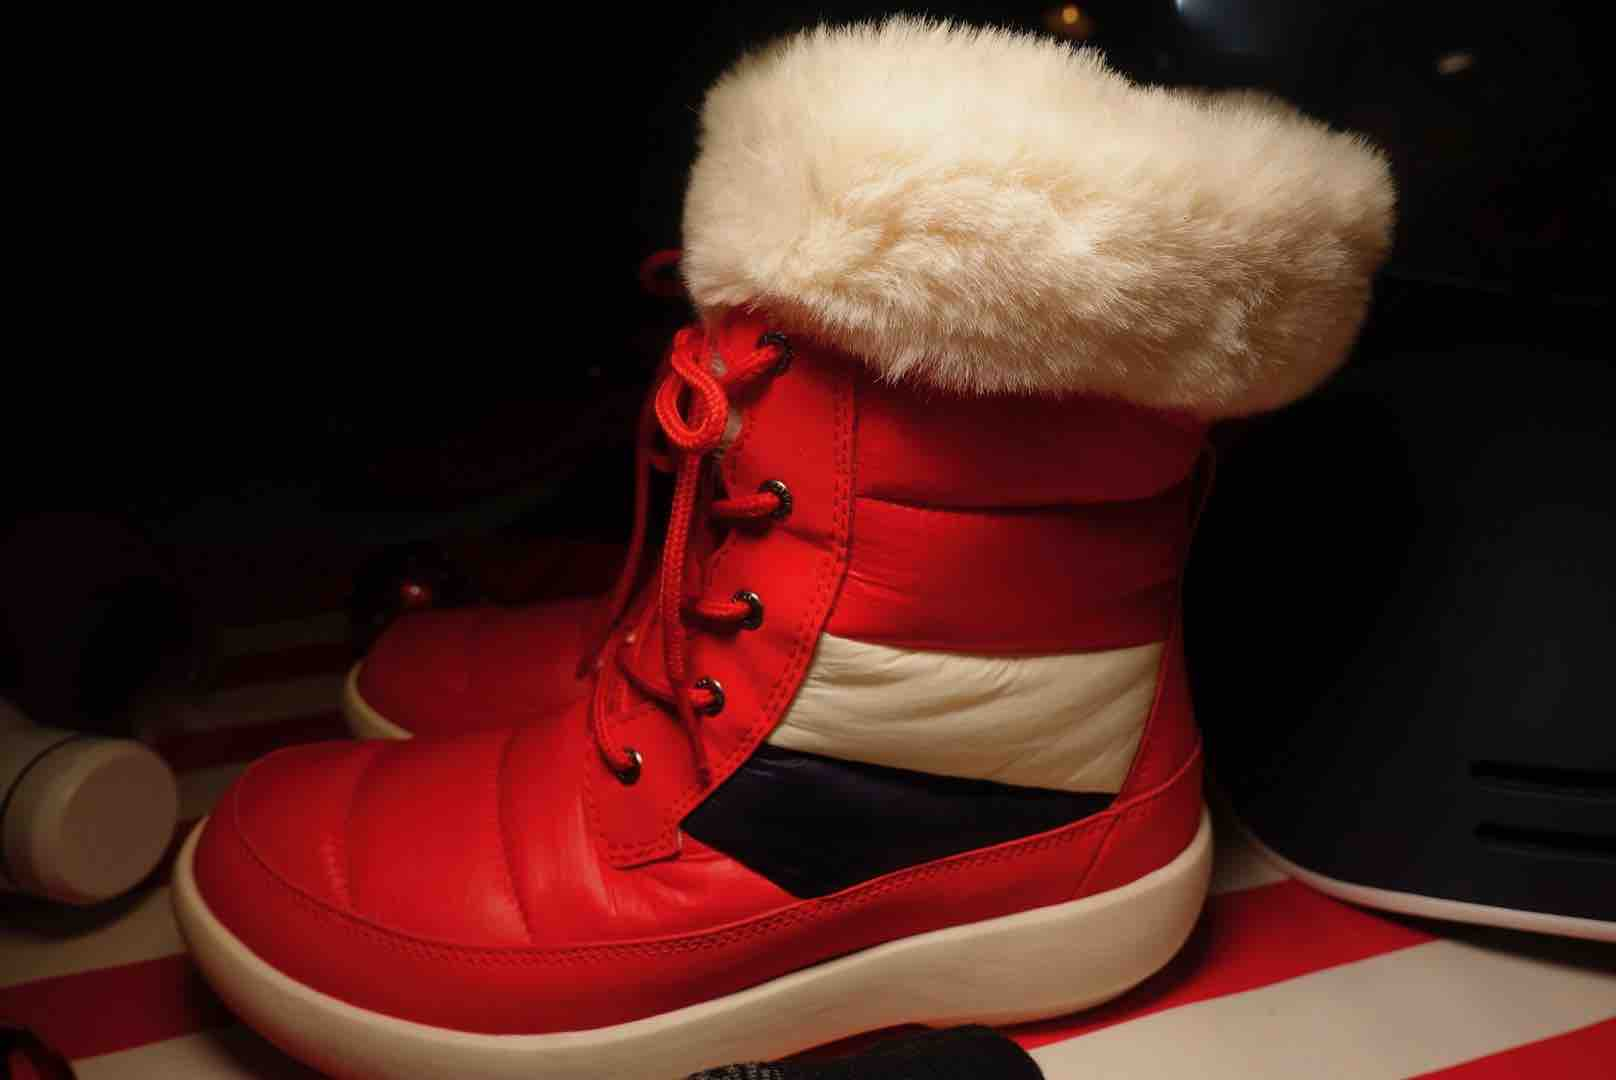 Sperry Women's Bearing PLUSHWAVE Nylon Boot Is Ready For The Outdoors This Winter